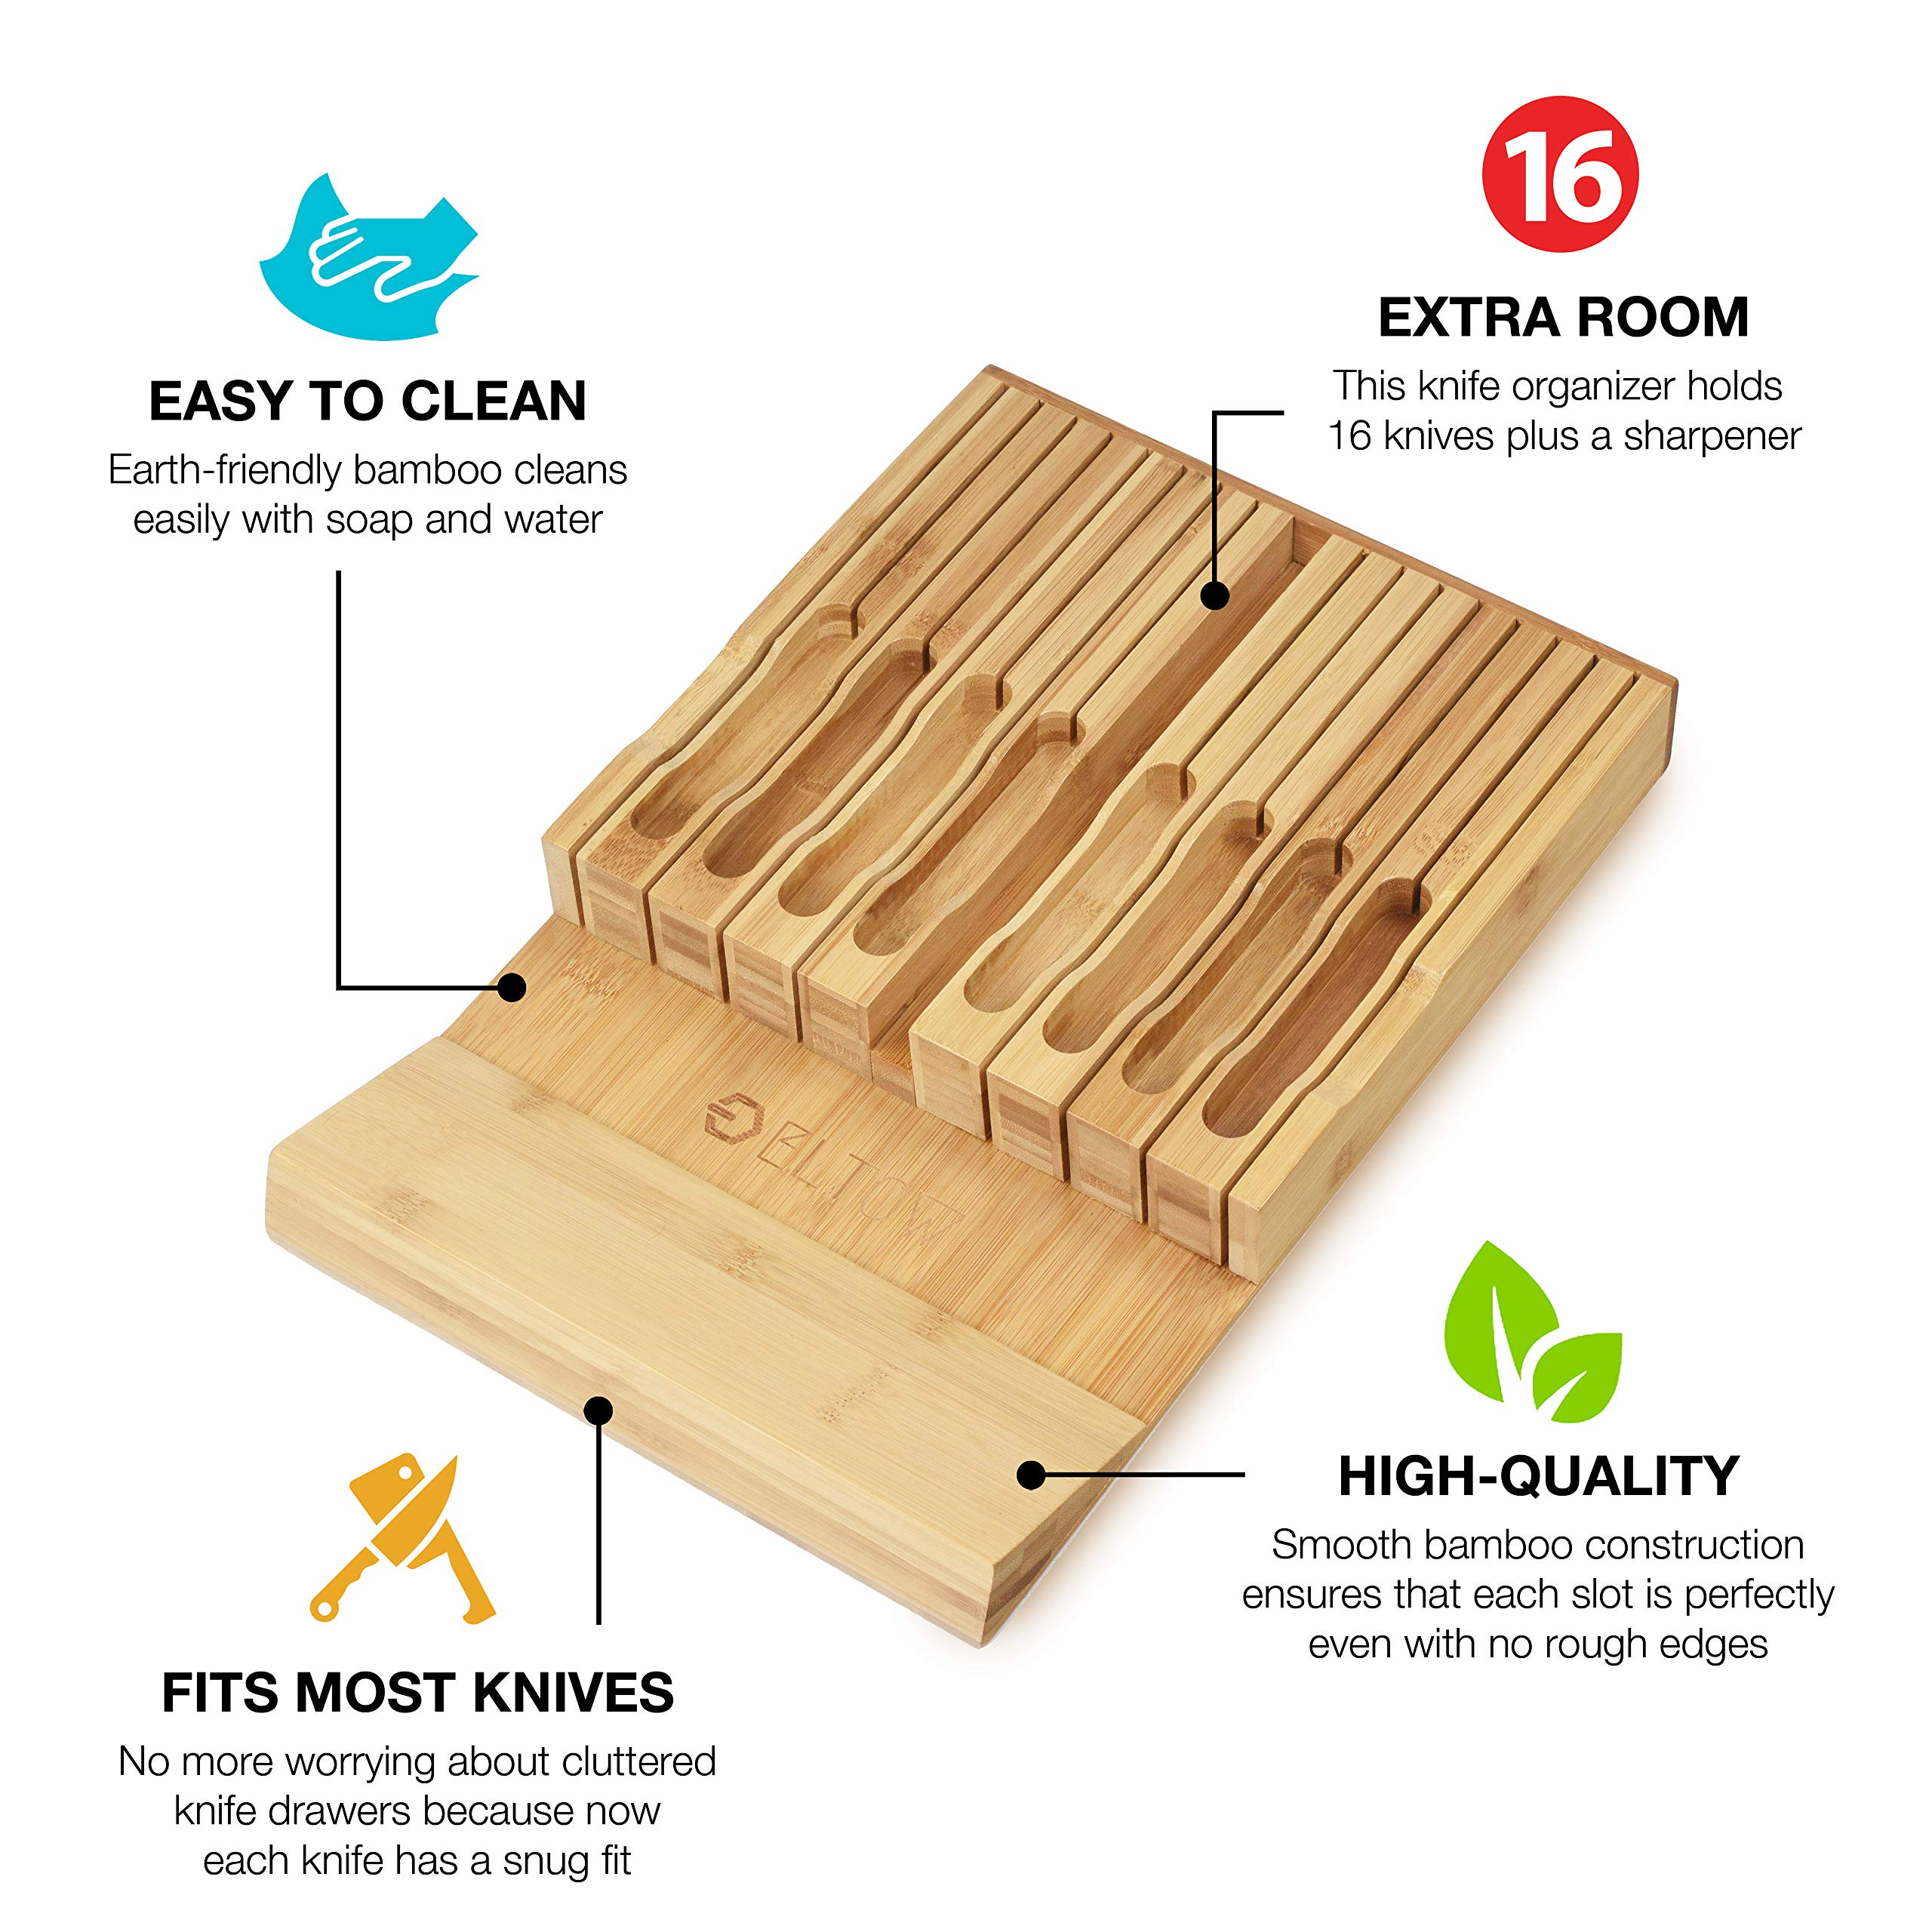 ELTOW In-Drawer 16 Knife Block Bamboo Organizer | Drawer Knife Set Storage with Safety Slots for 16 Knives and Knife Sharpener | Cutlery Set Holder Elegantly Crafted from MOSO Bamboo by ELTOW (Image #3)